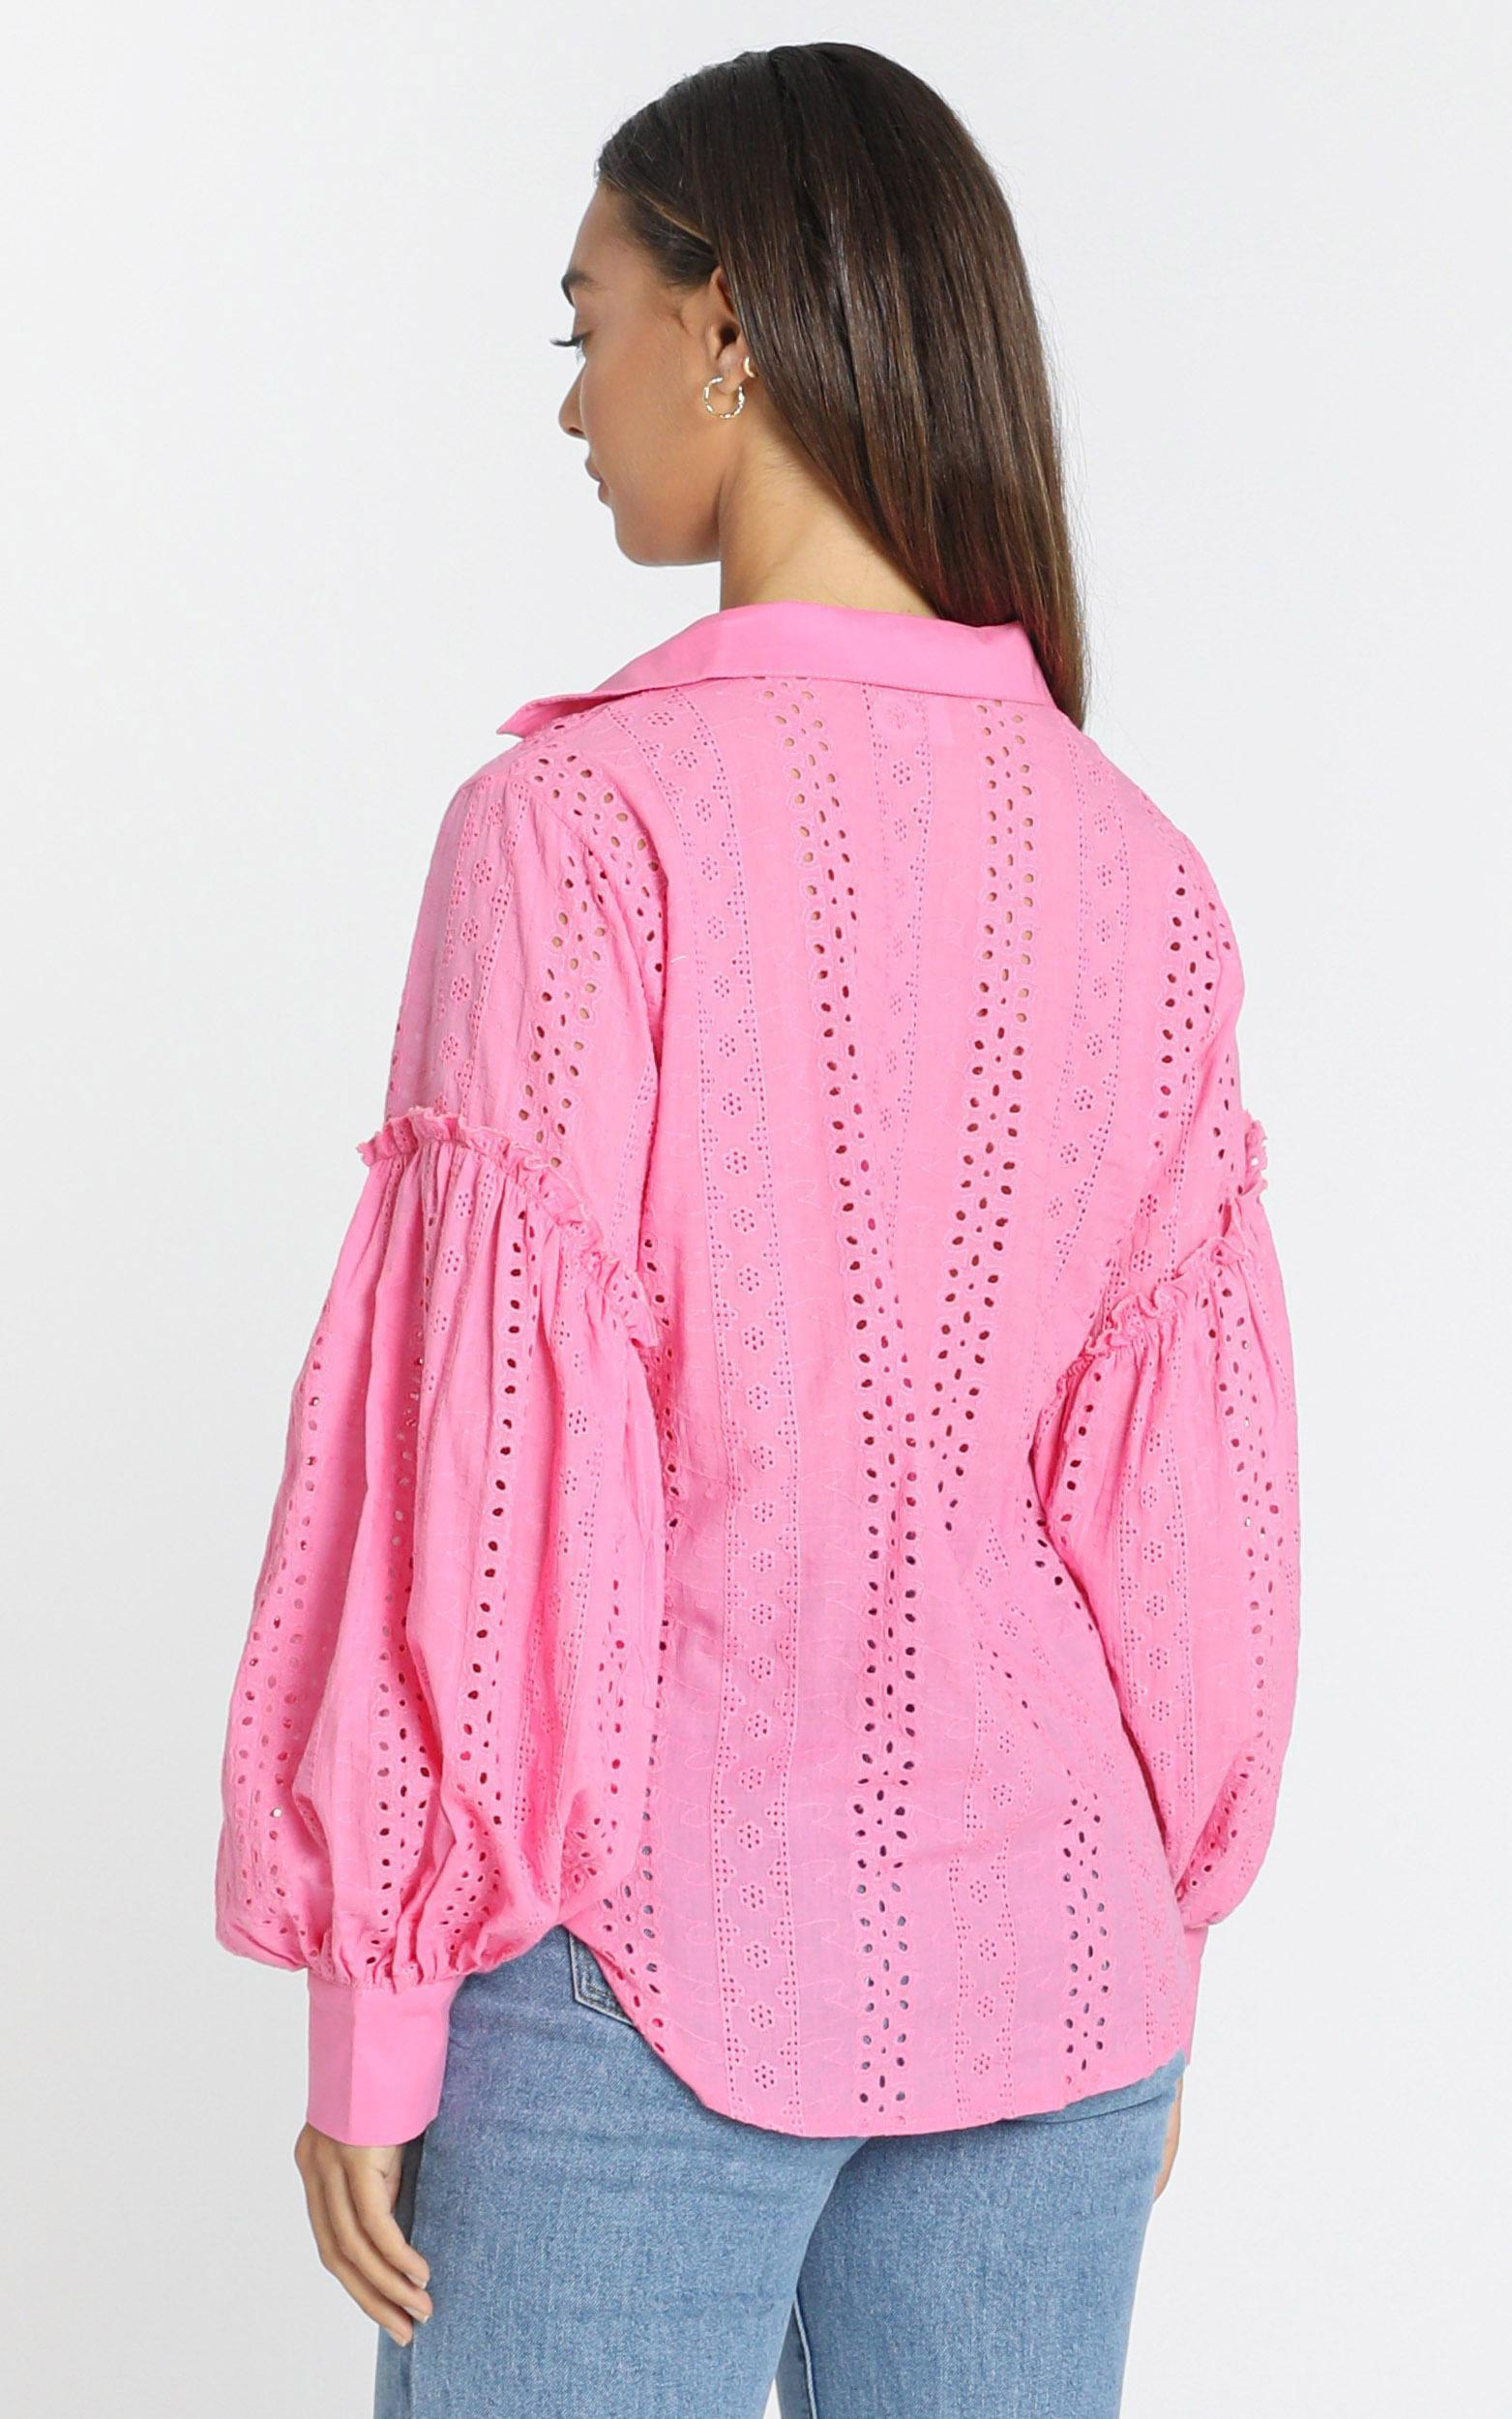 Beautiful Things embroidery shirt in hot pink - 14 (XL), Pink, hi-res image number null